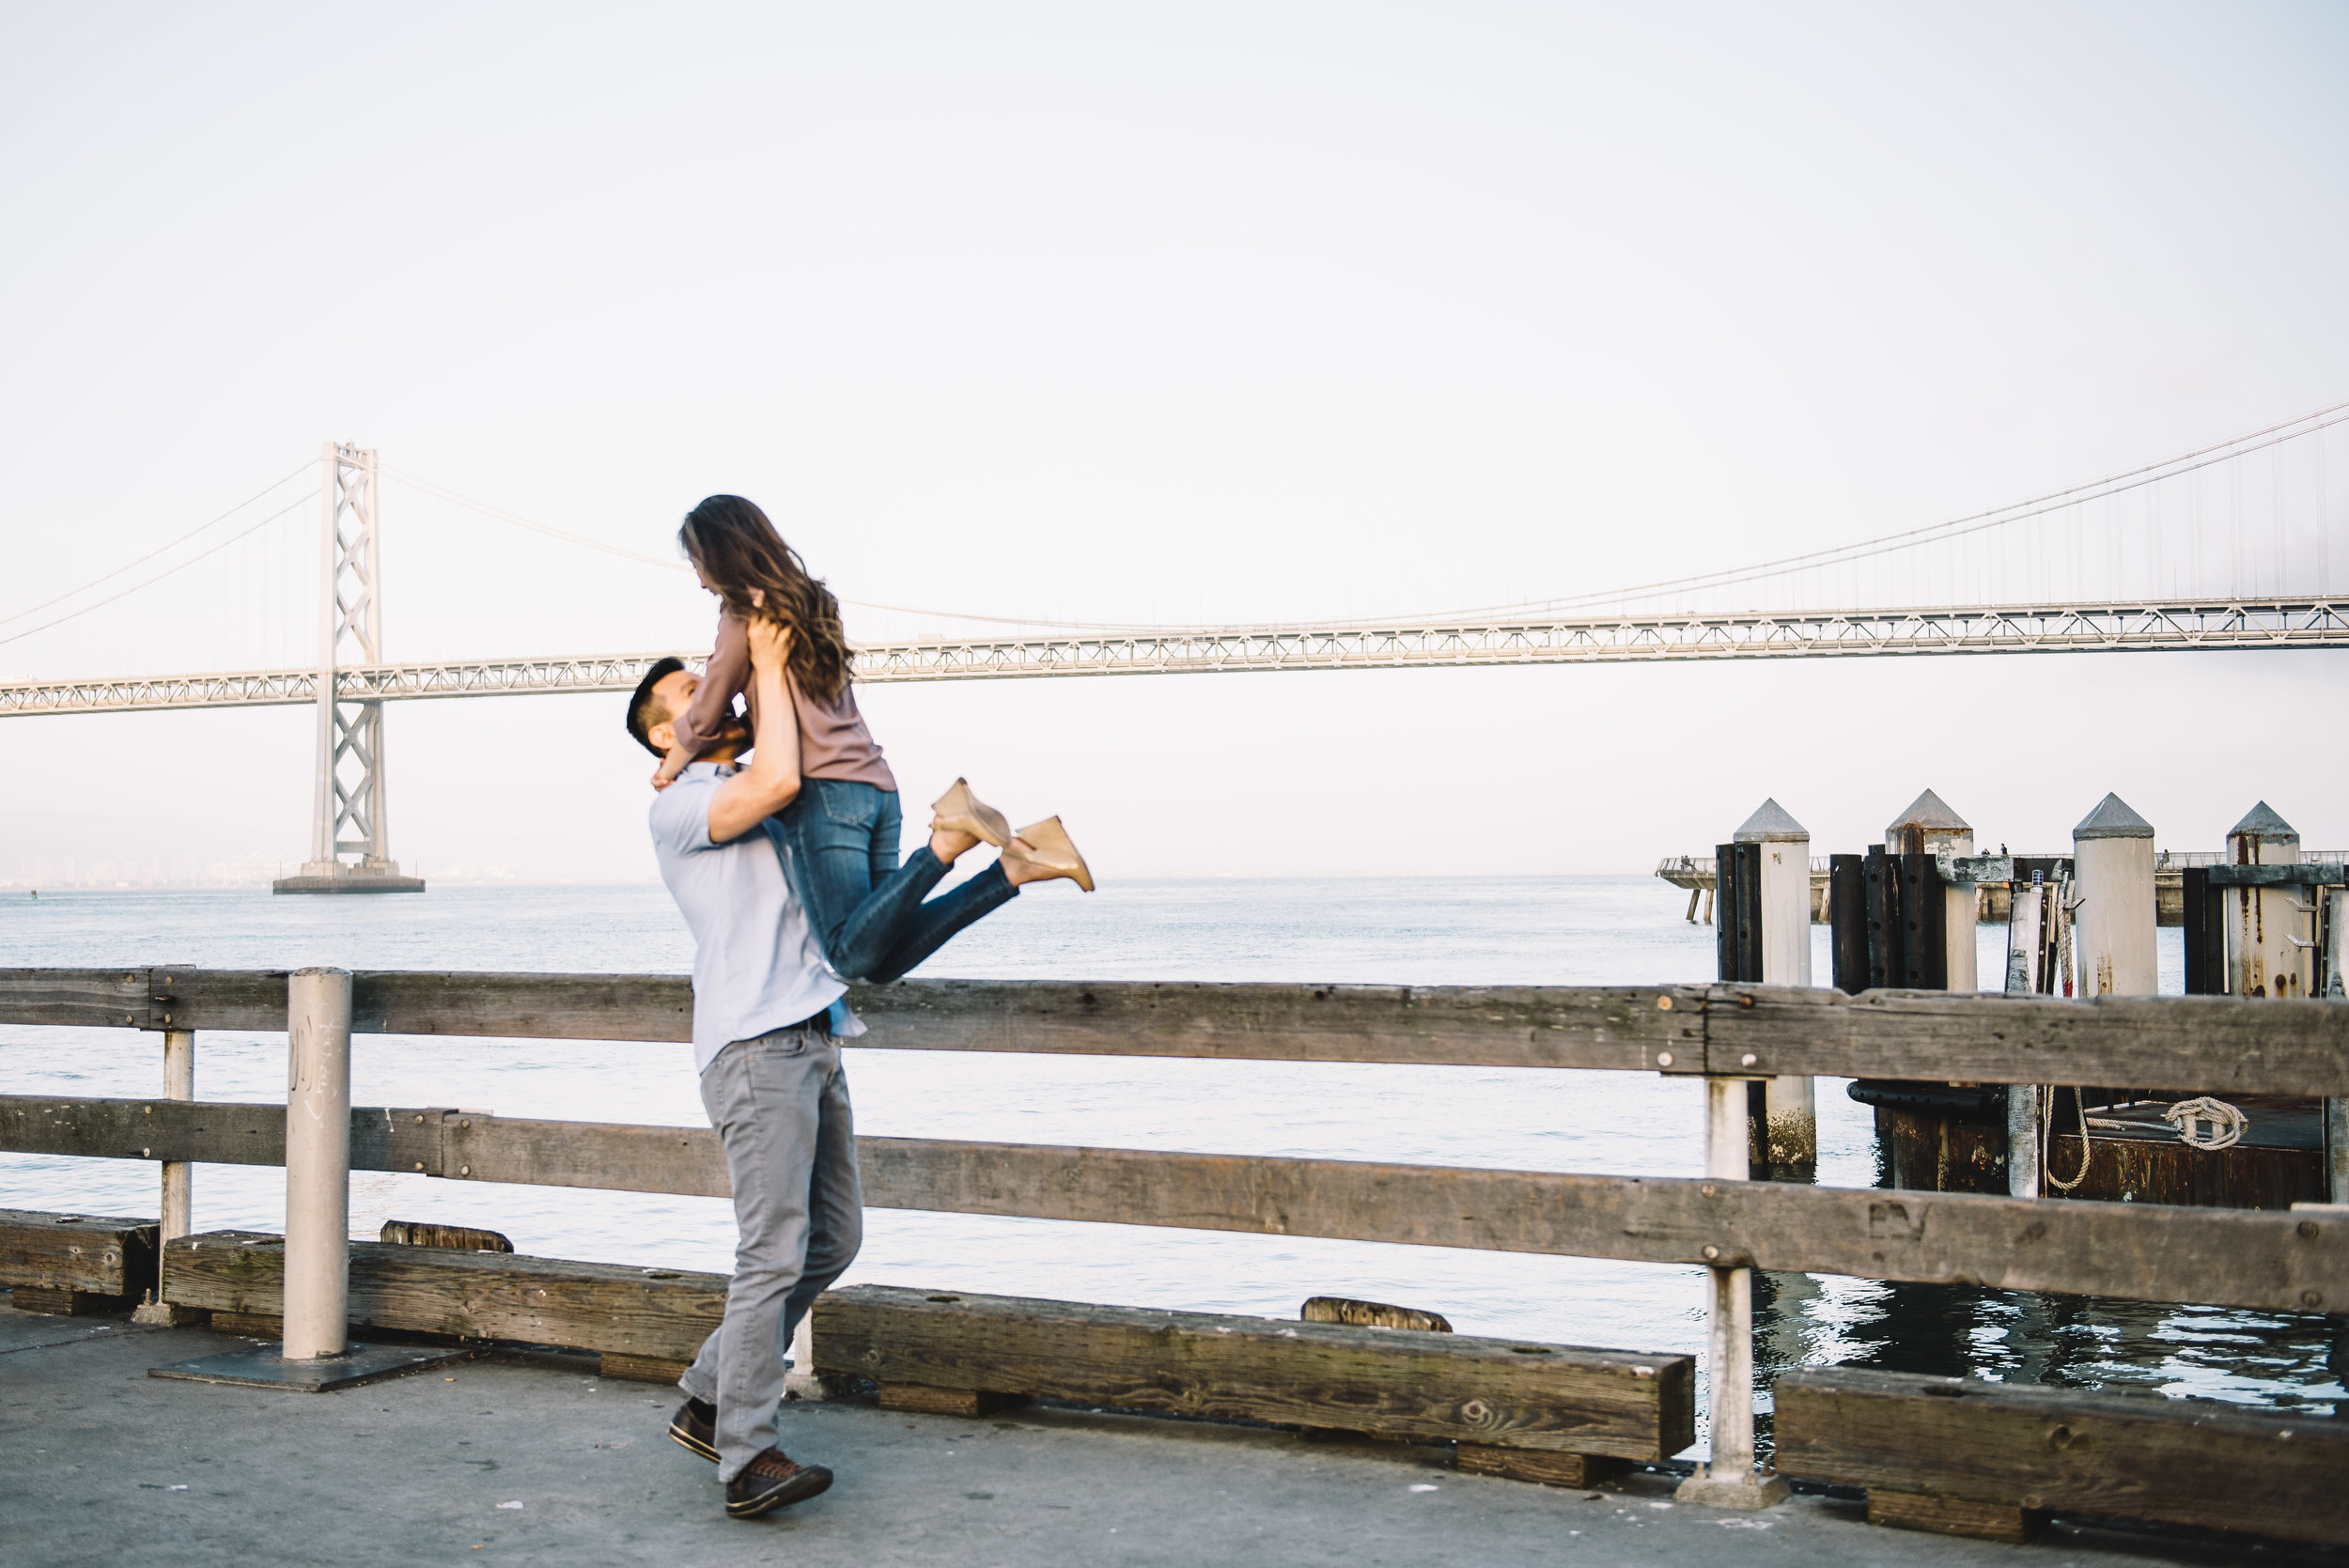 jennifer-jayn-photography-san-francisco-engagement-session-13.jpg